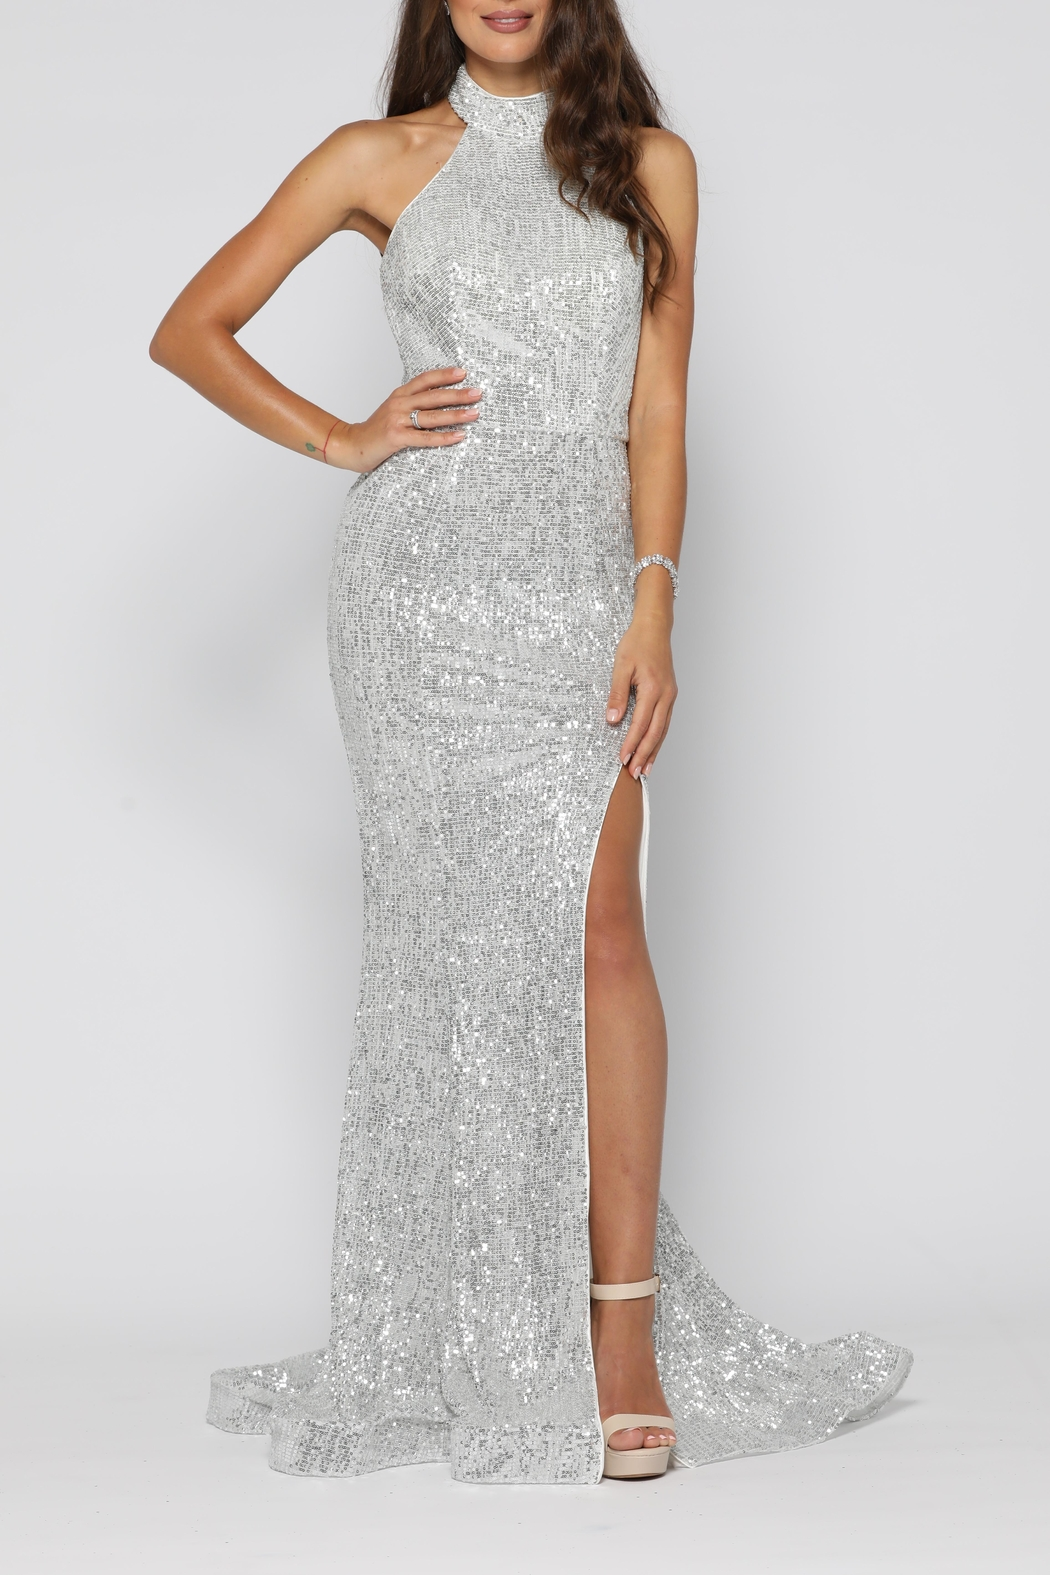 YSS the Label Valerie Gown Silver - Main Image